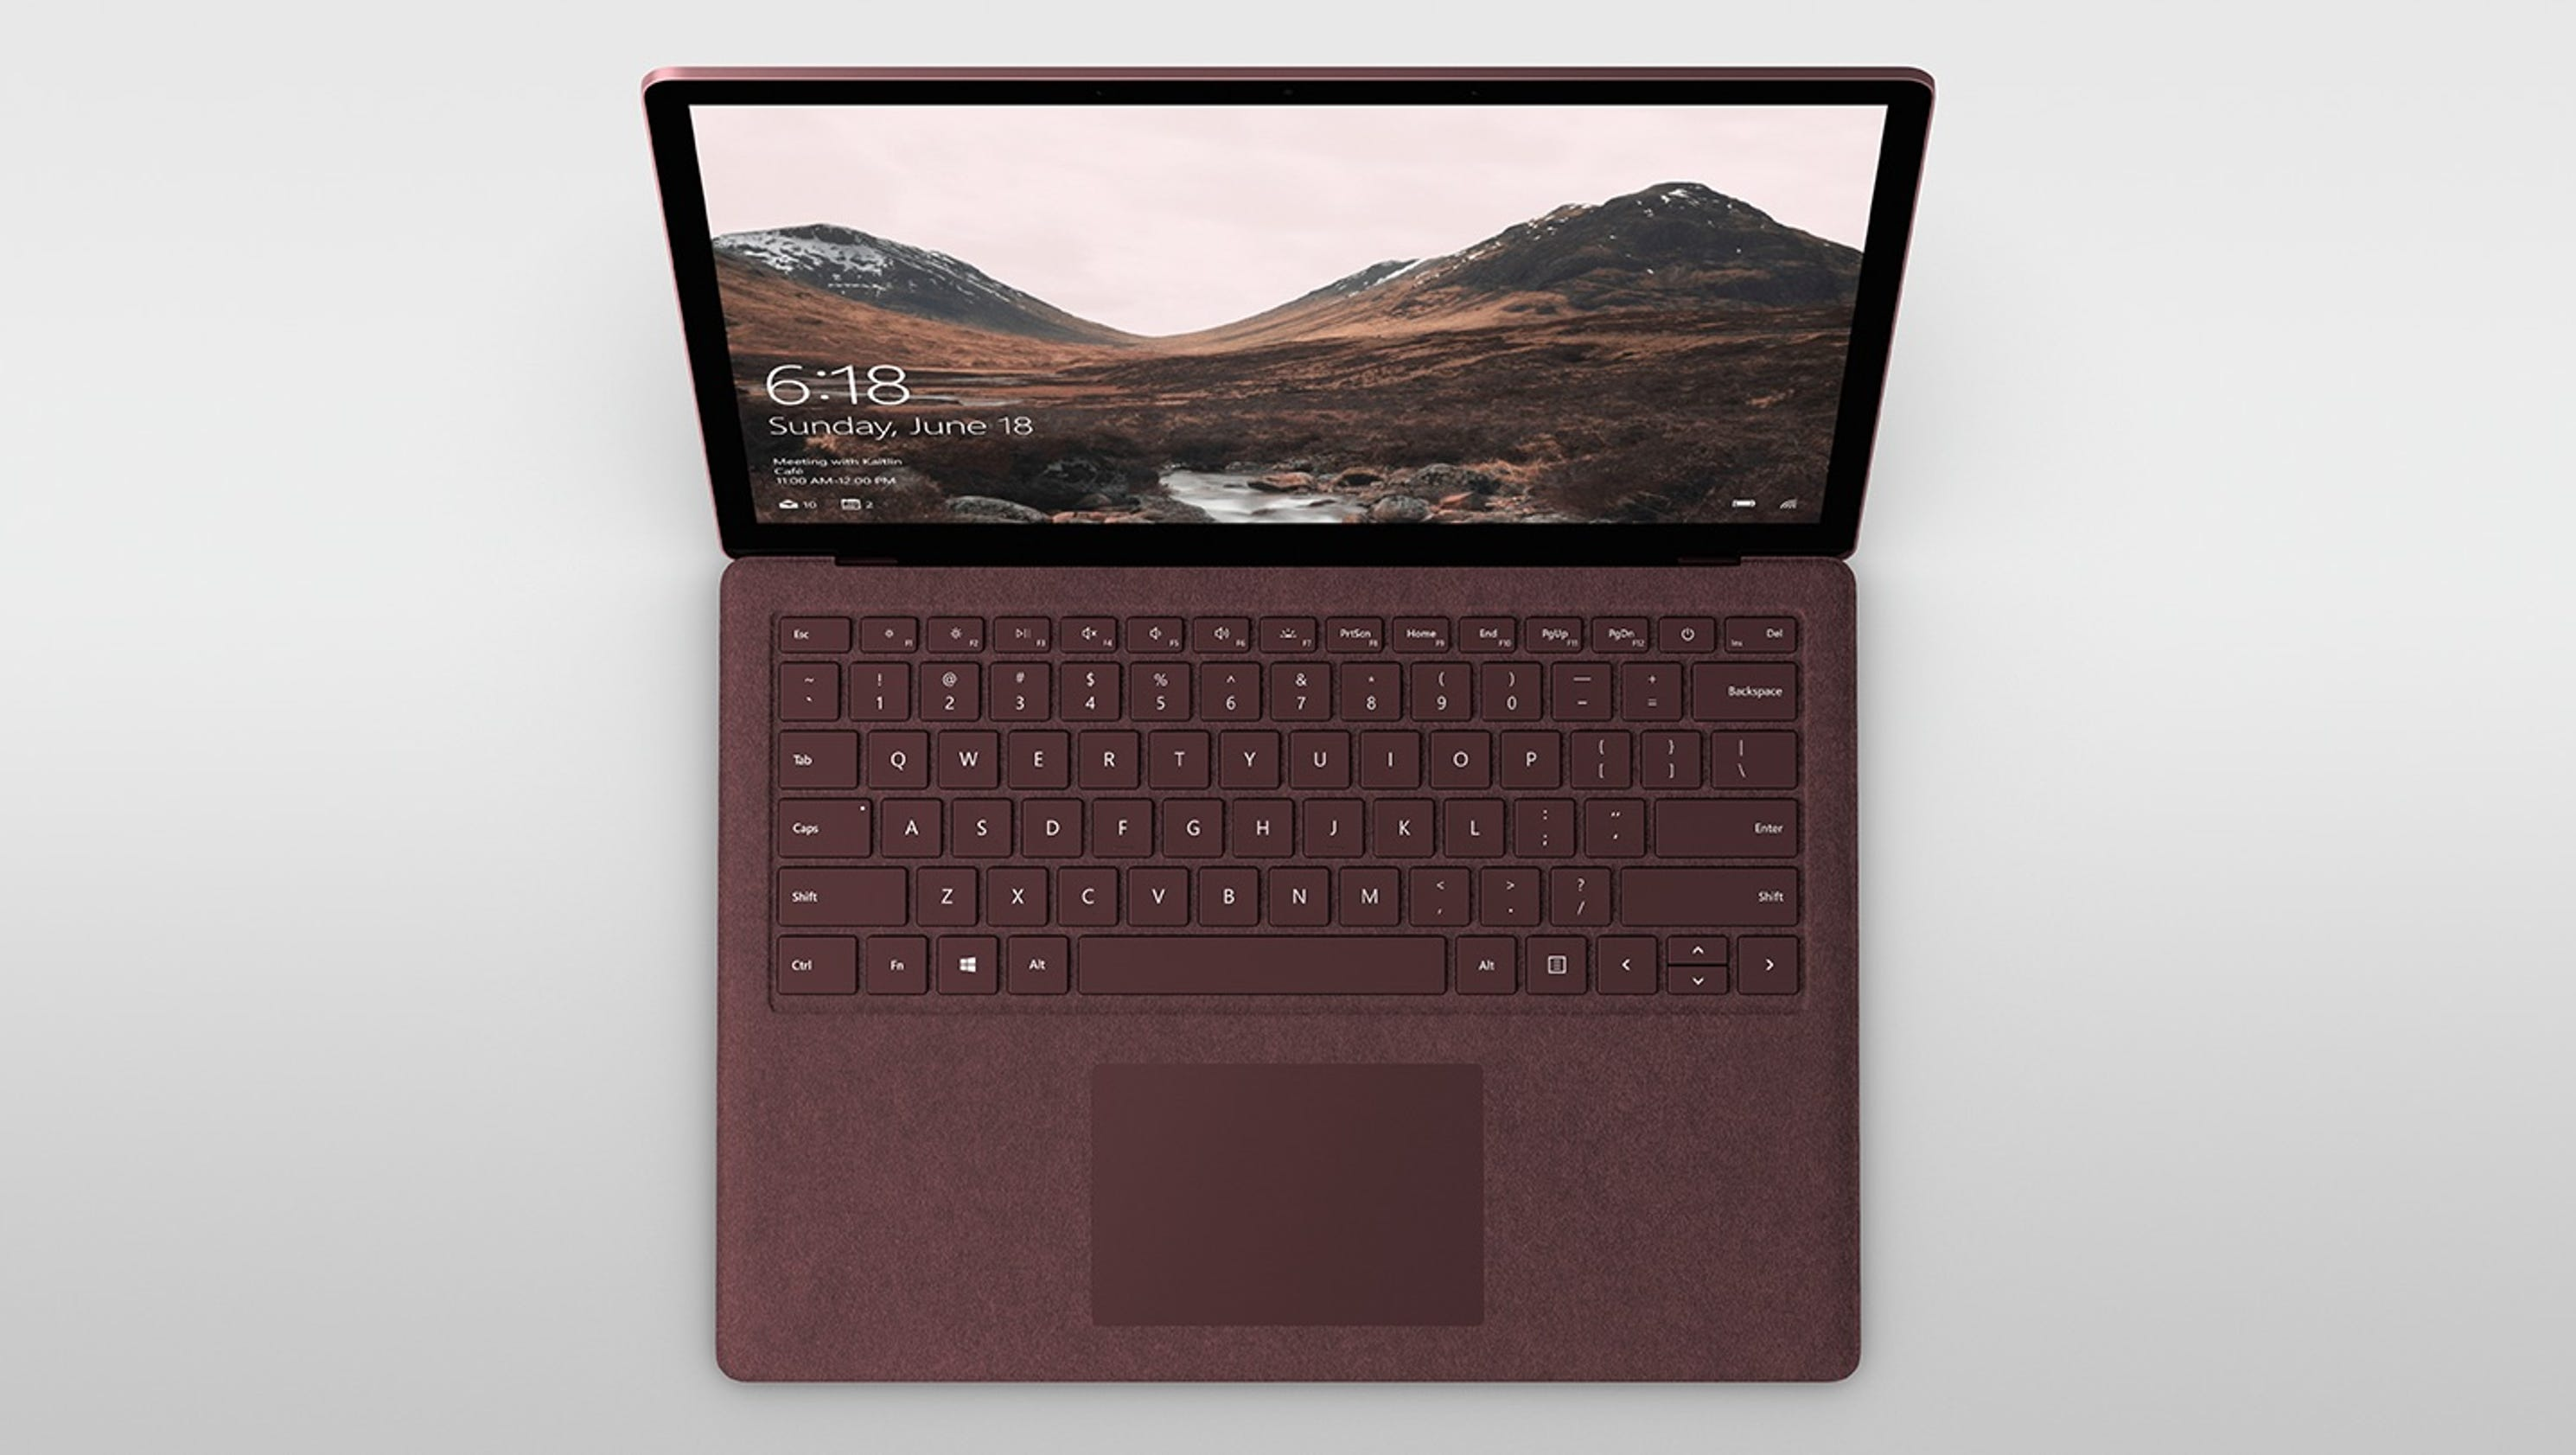 microsoft surface laptop nearly aces test. Black Bedroom Furniture Sets. Home Design Ideas